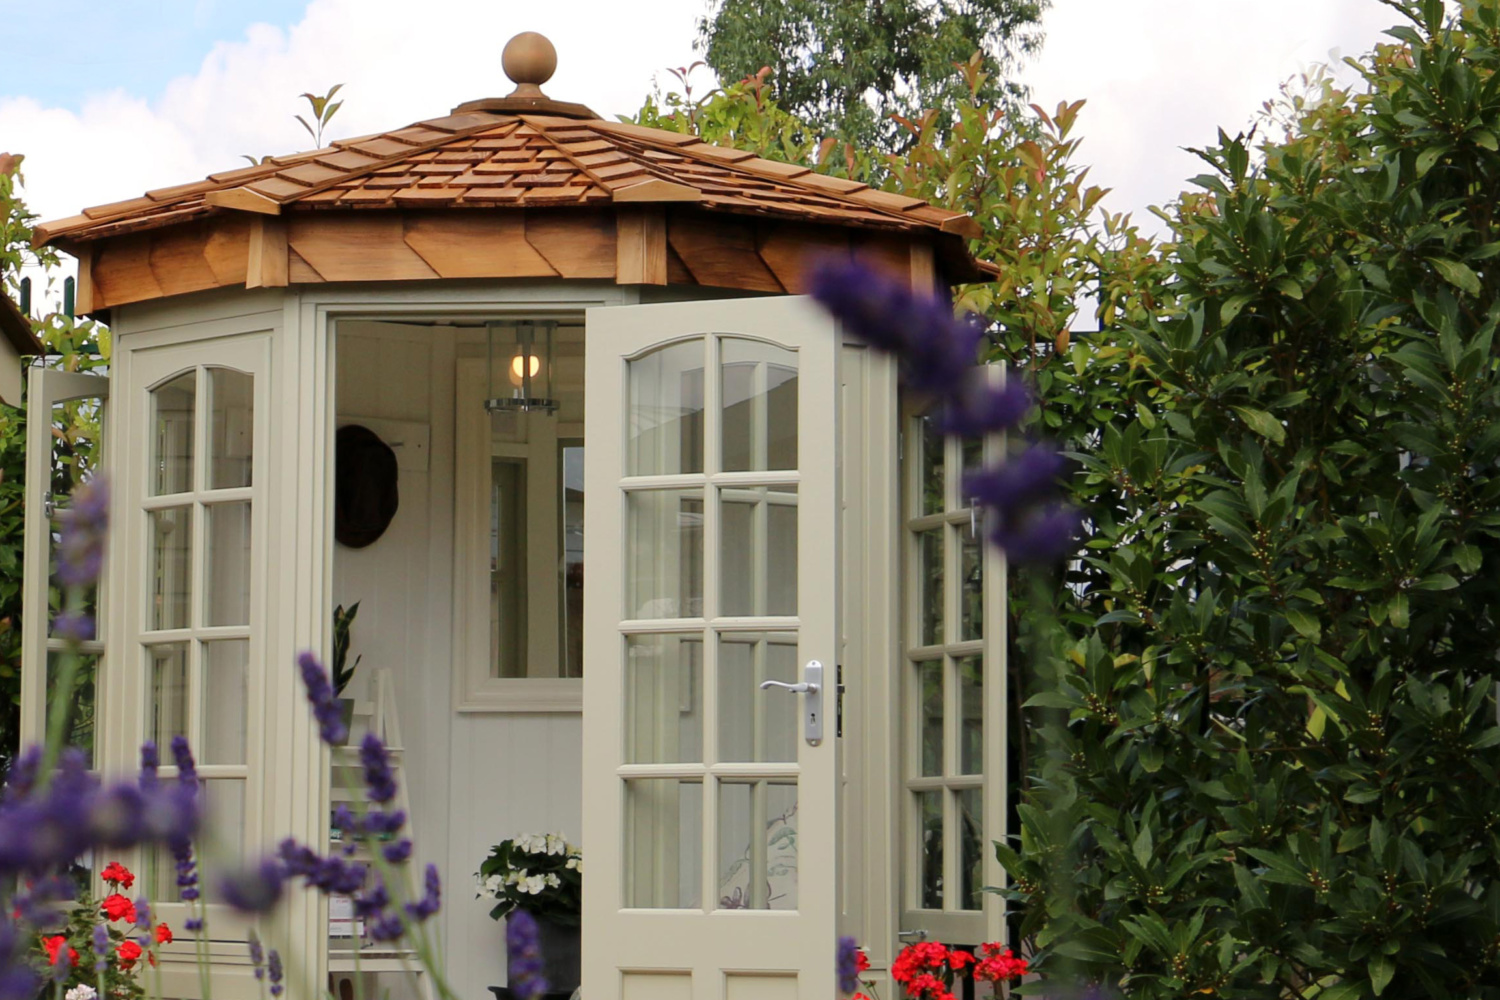 Reduced height Hopton Summerhouse